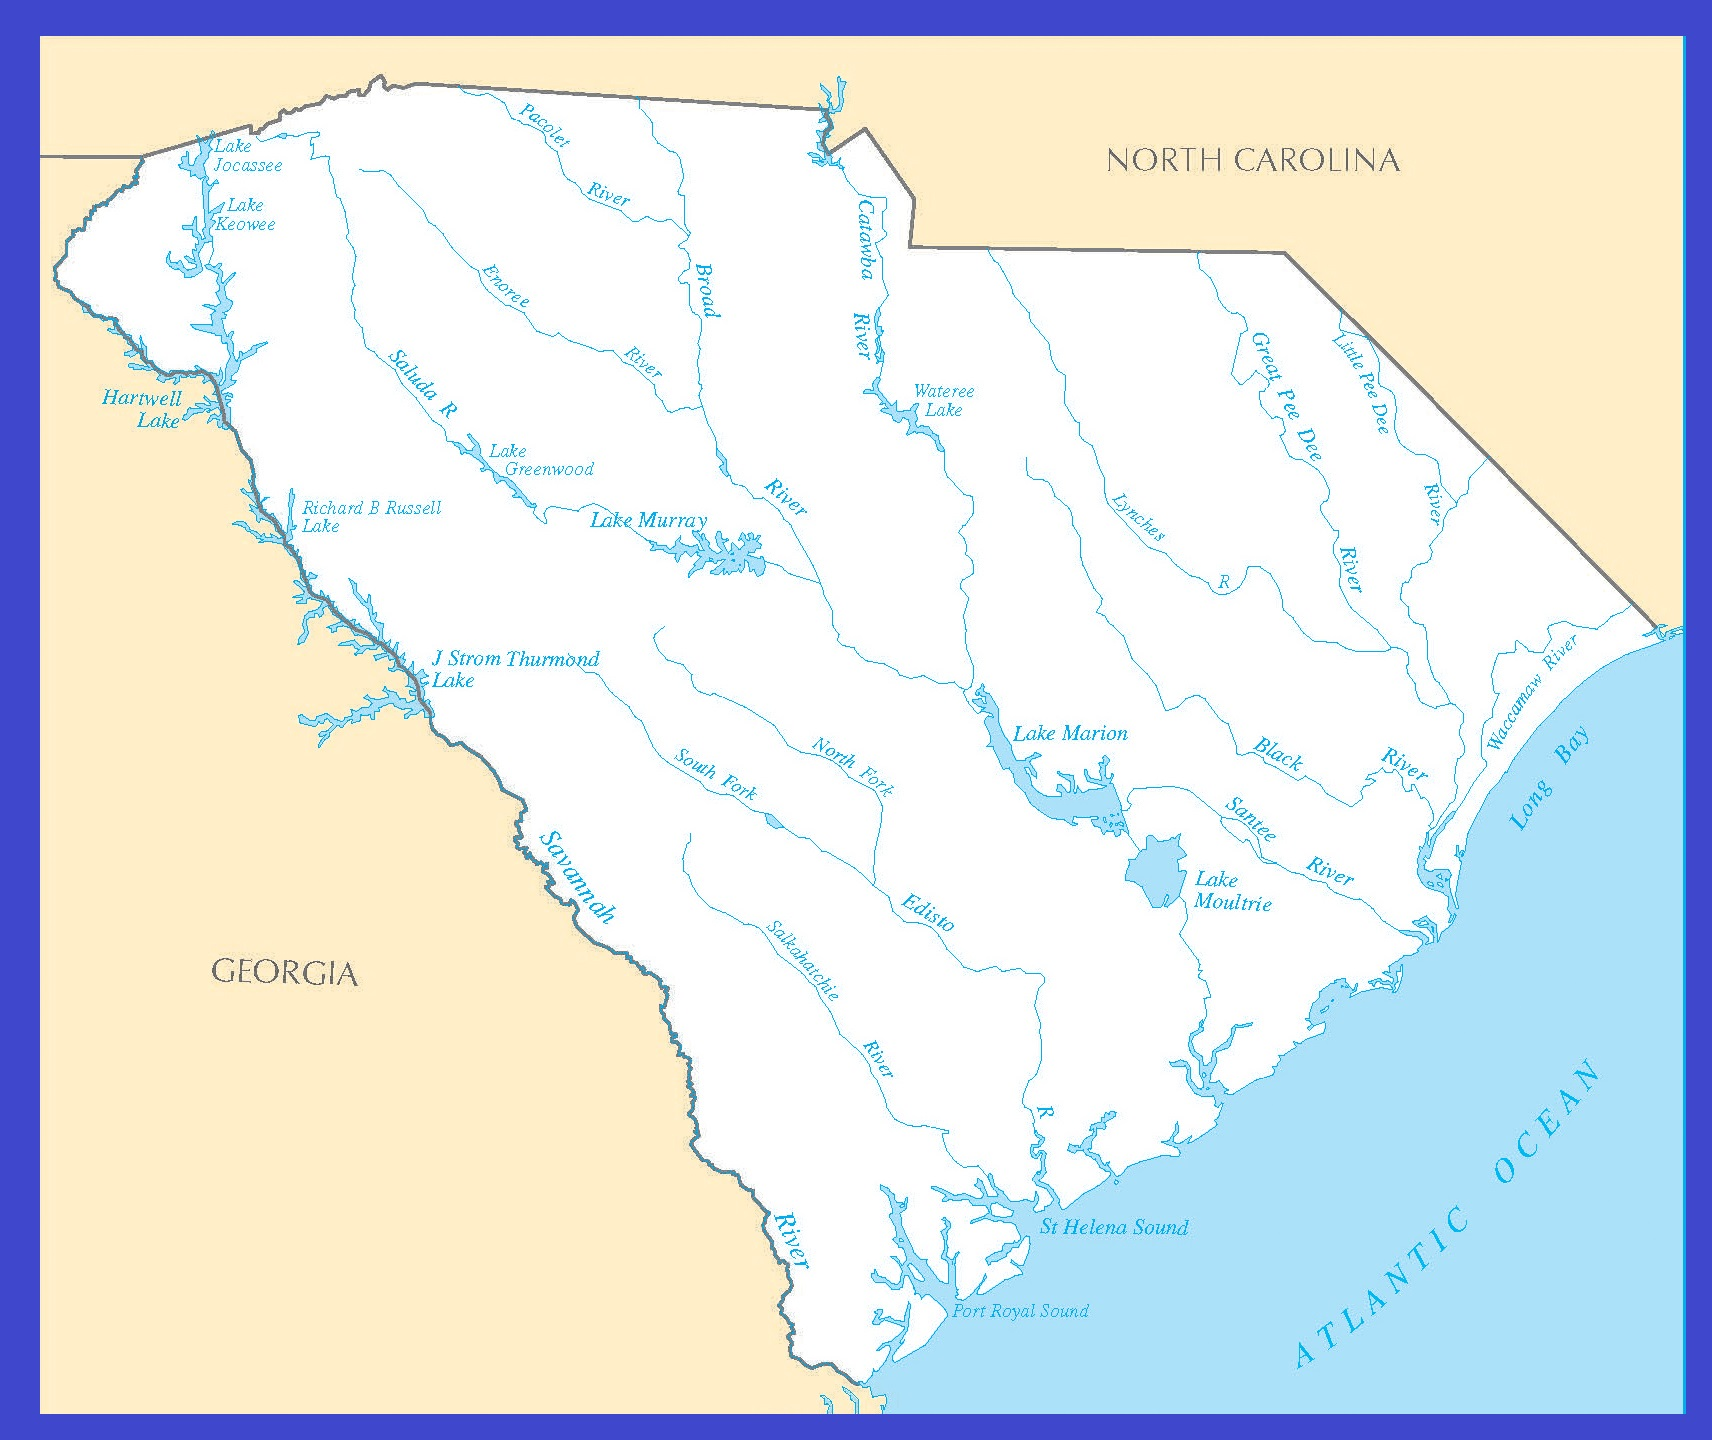 South Carolina Rivers Map | Large Printable High Resolution and Standard Map